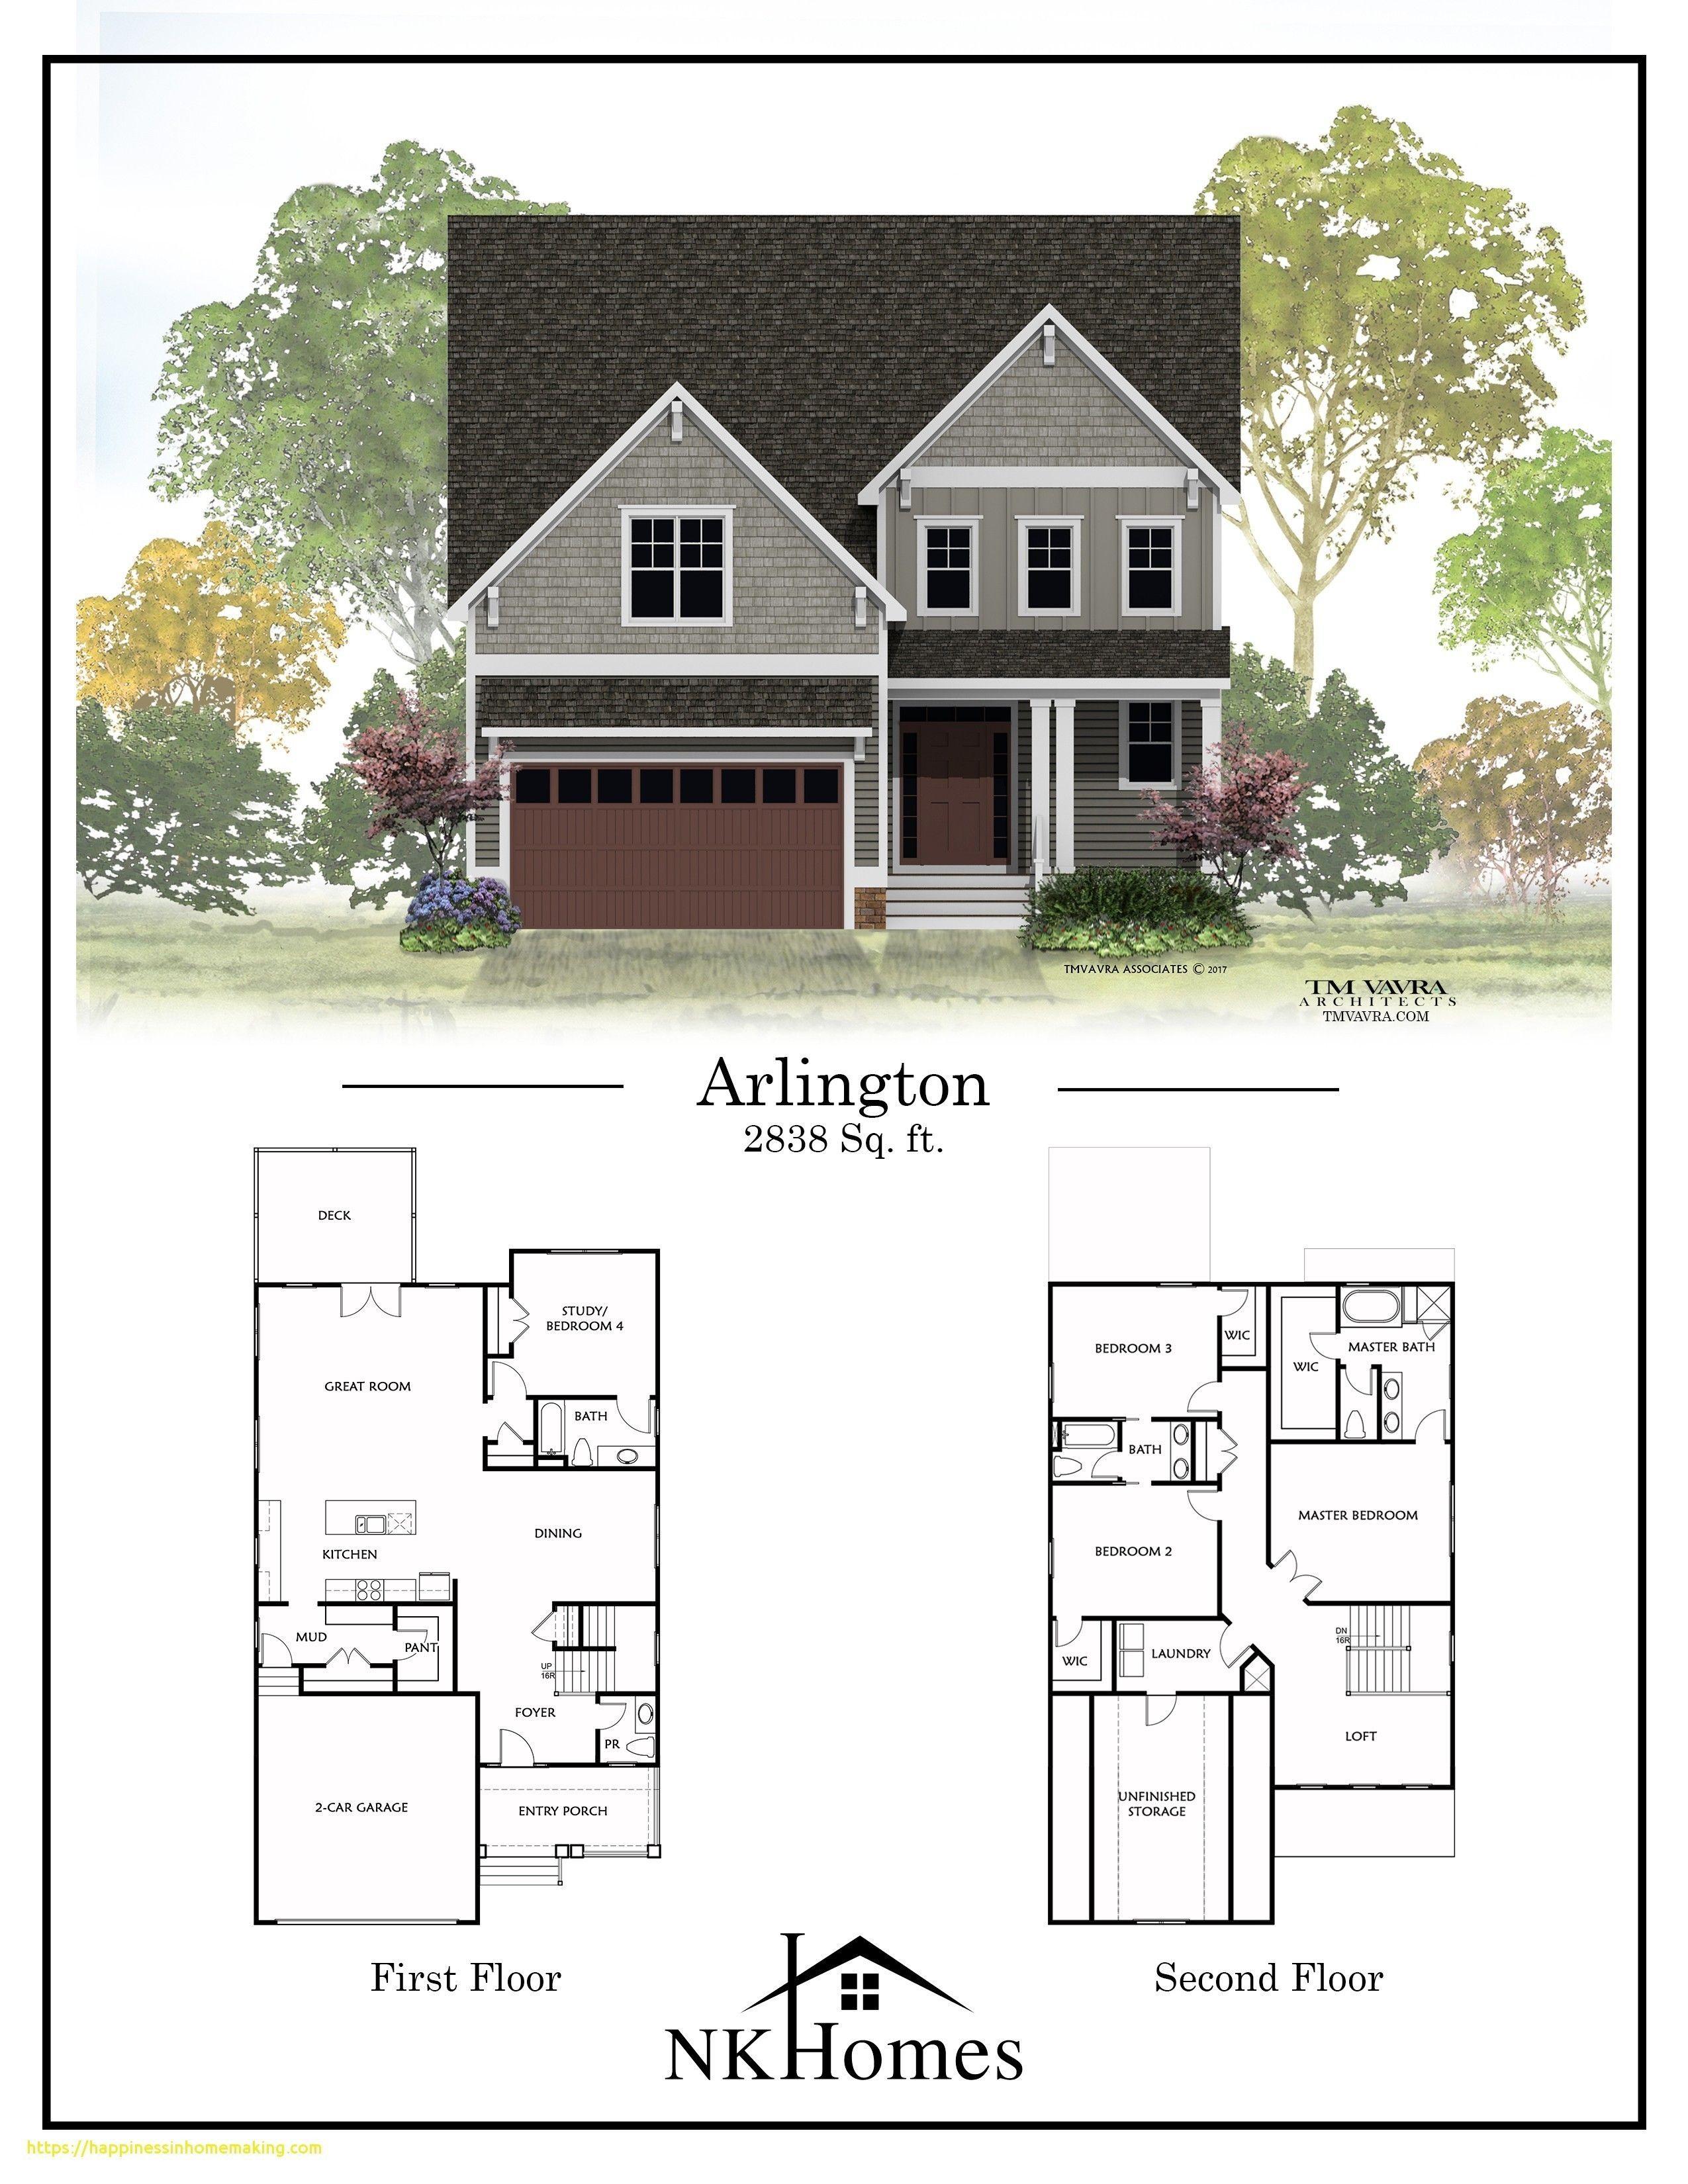 22 Small House Plan Inspiration Minecraft House Designs Minecraft House Plans House Blueprints